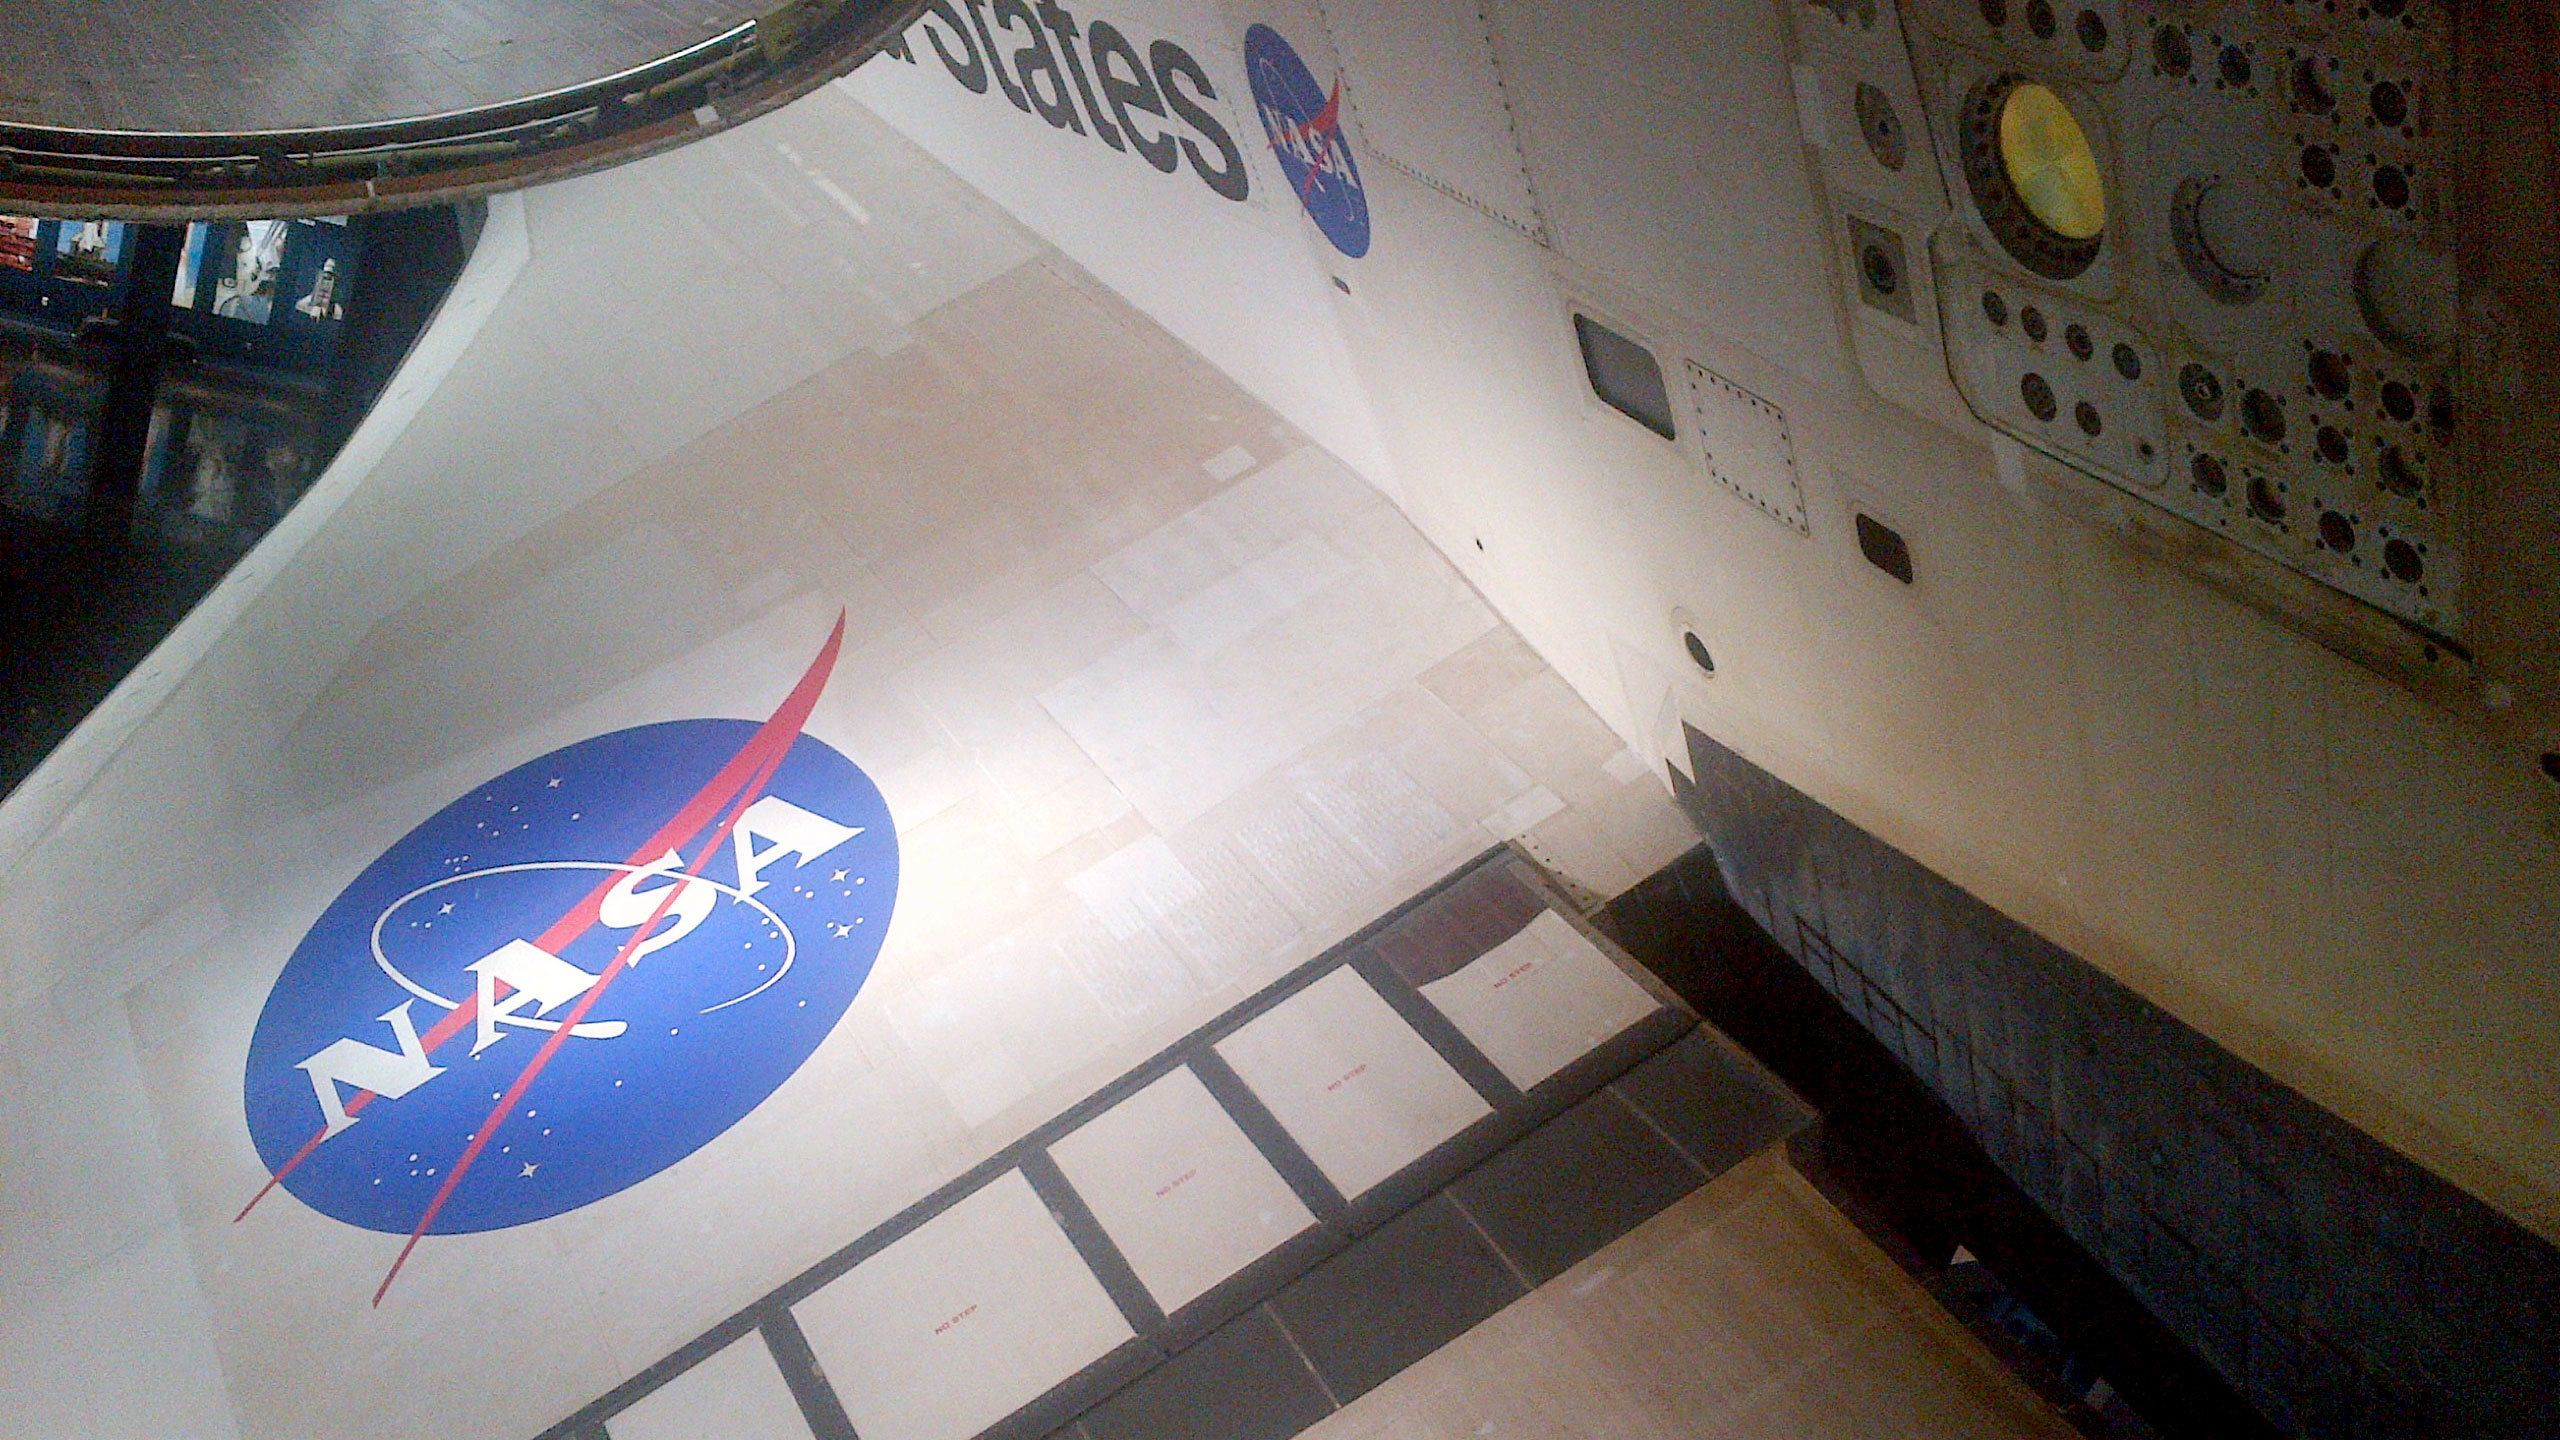 Nasa logo on wing of space shuttle at the Kennedy Space Center in Orlando